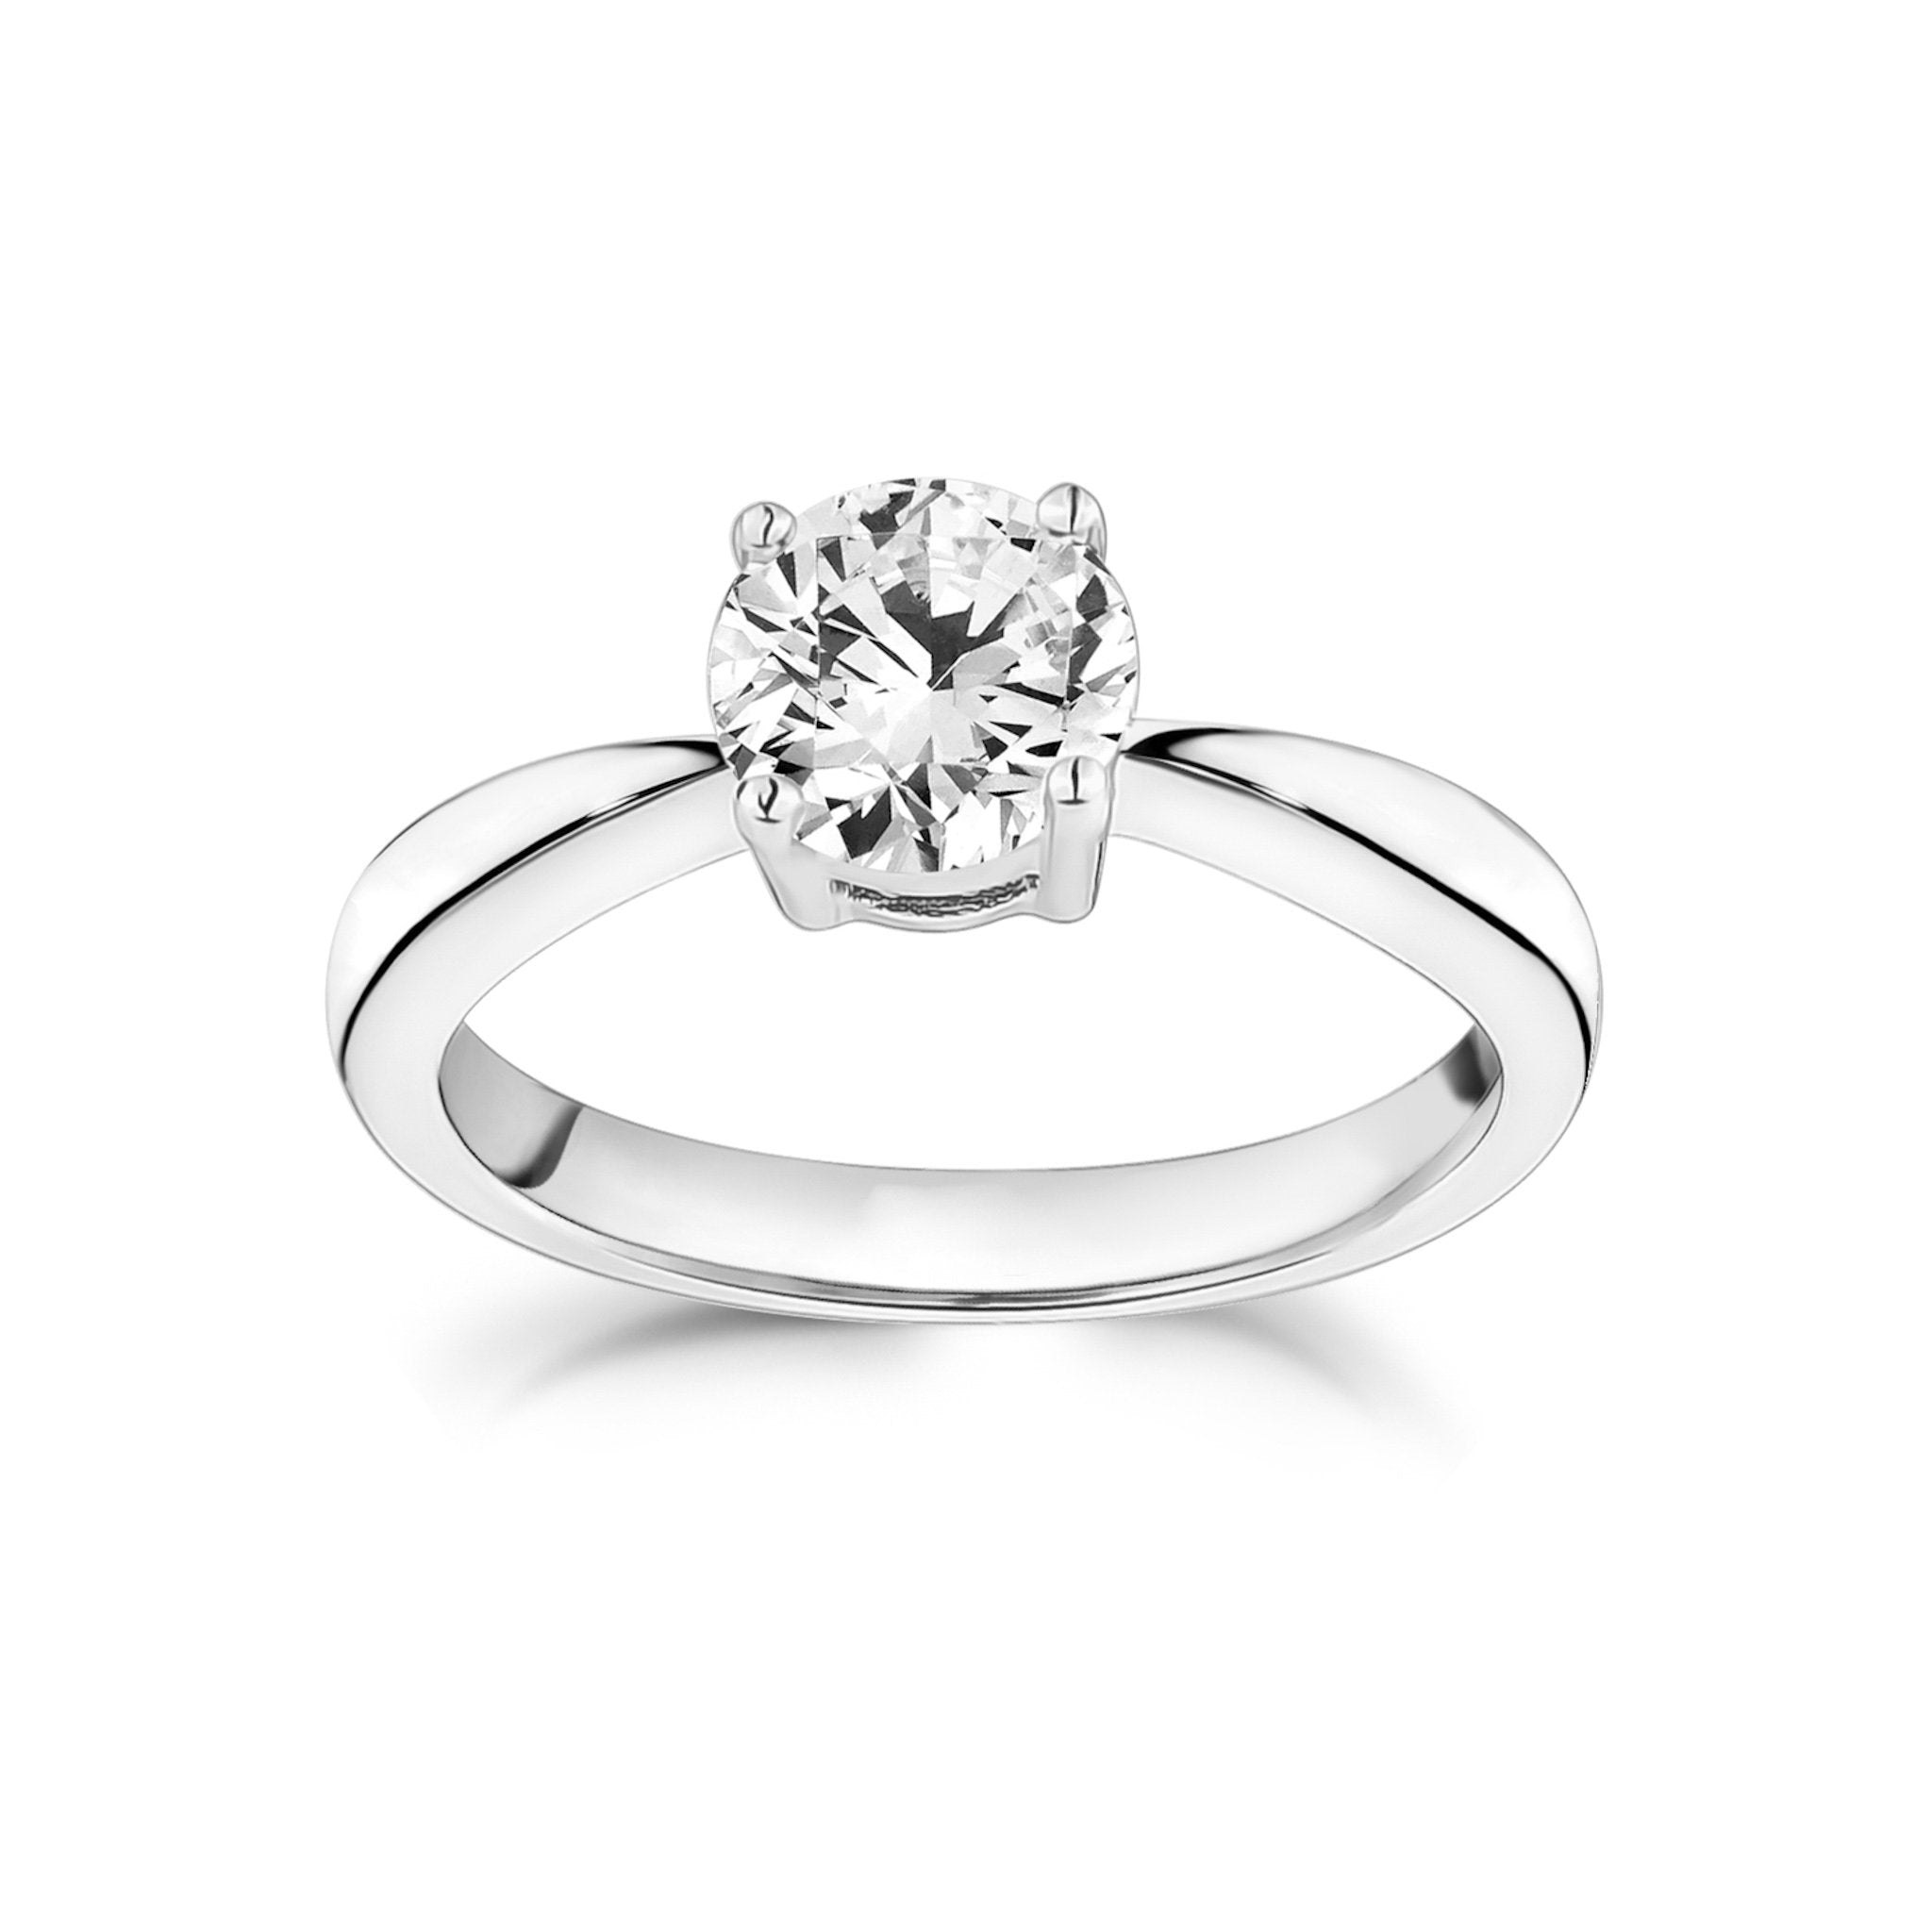 Women Ring - Stainless Steel Round Solitaire Engagement Ring